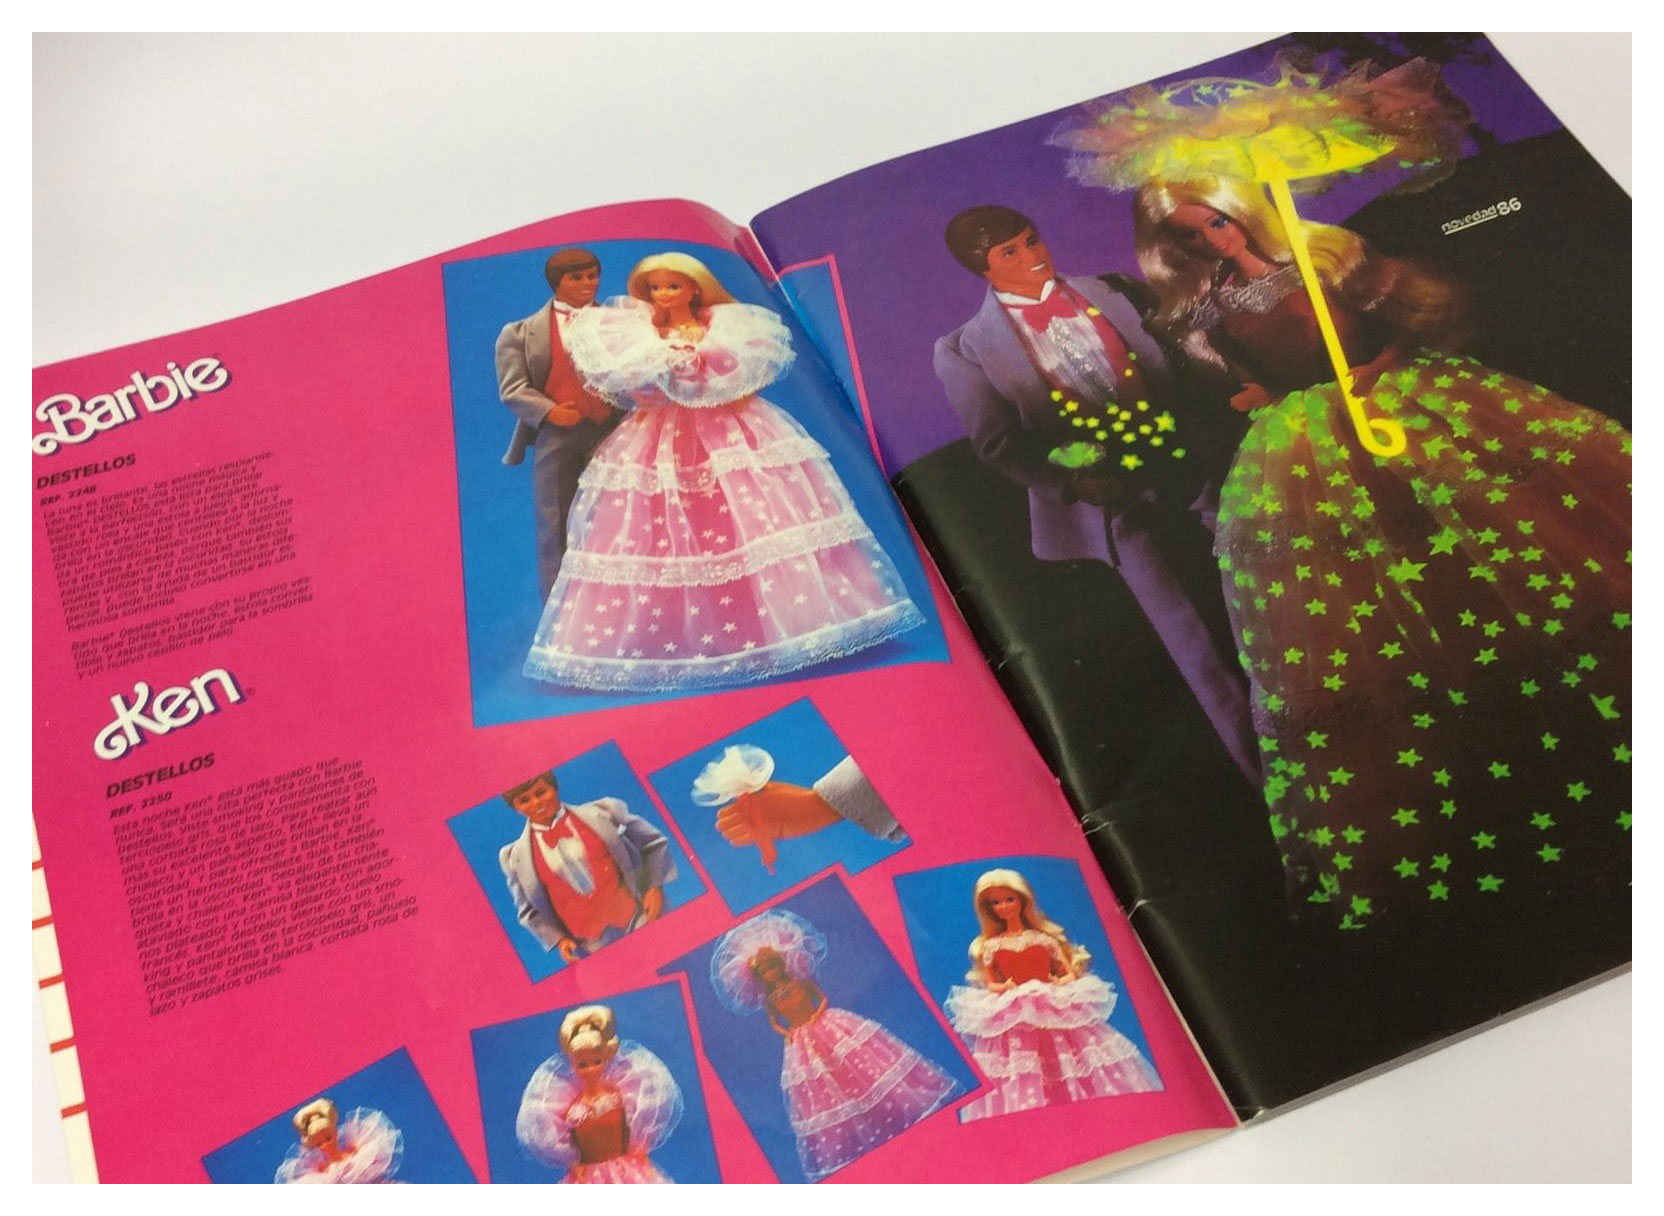 From 1986 Spanish Mattel catalogue